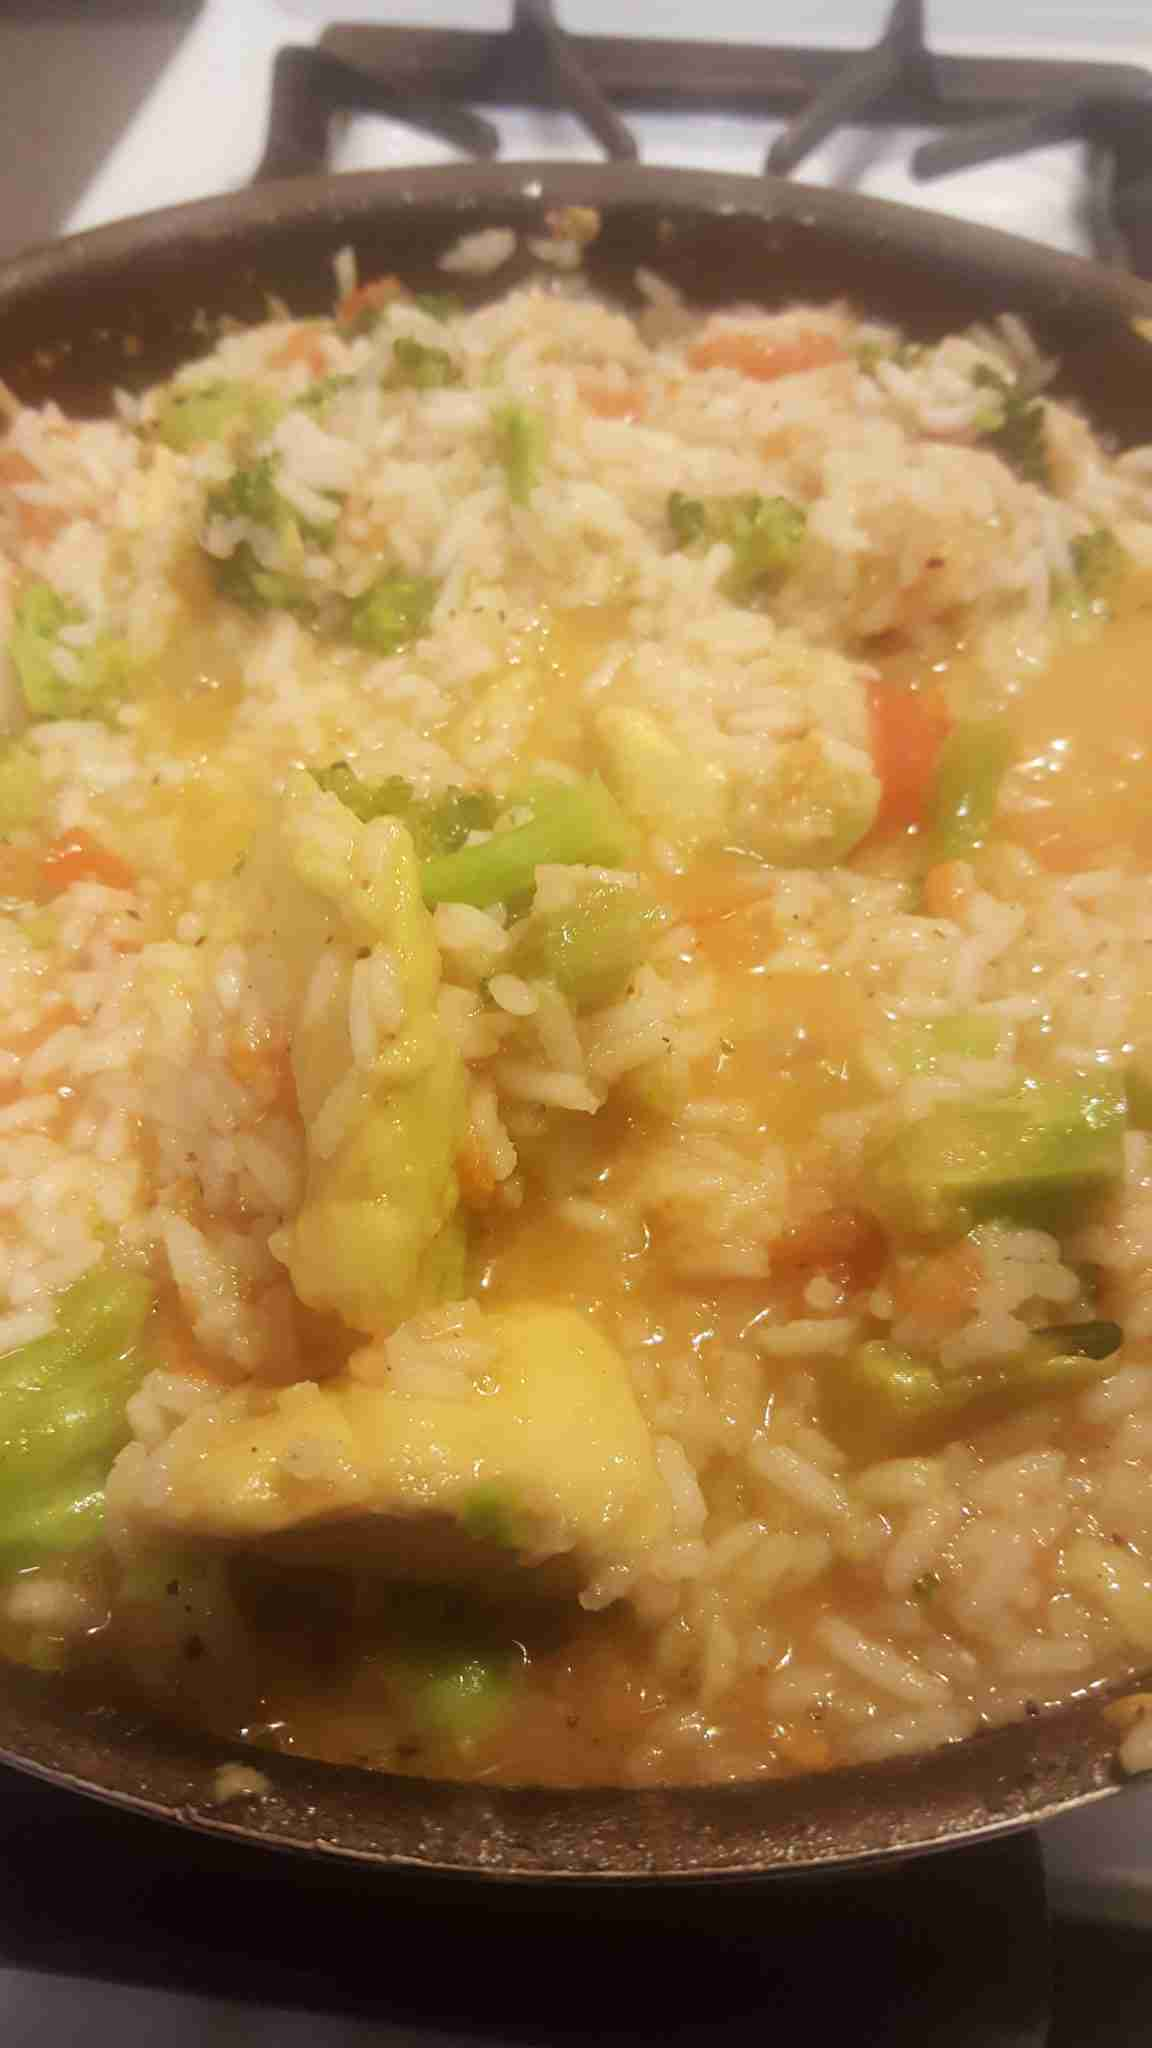 Vegans eat rice, right? Of course. Everyone loves rice. It's seen as a low-calorie carb that is easy to digest and won't cause weight gain. I've been experimenting with healthy cooking in order to load up on fruits and veggies, increase energy, slim down, and just overall, be a healthier me. So, I started this dish off with rice. In this case, lots and lots of rice because I always make the mistake of adding too much rice whenever I make anything (I'm not really into measuring). So, naturally, I ended up with enough rice to feed eight people. (Which definitely makes me sad, but I will talk more about how I countered this overcooking  to make healthy eating easier on my life to maintain.)